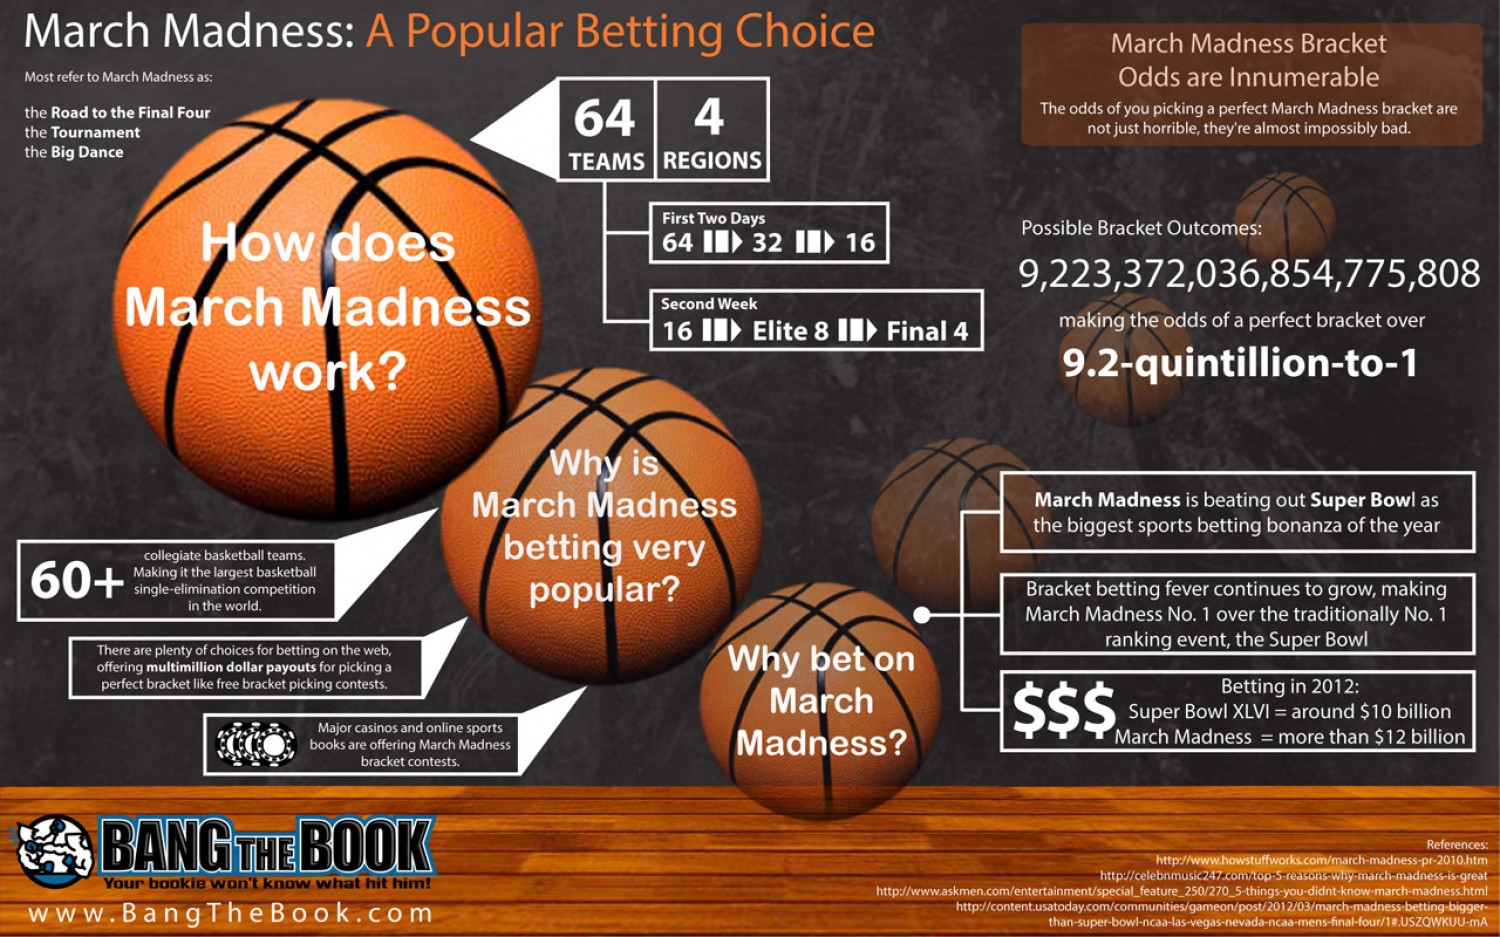 March madness betting no risk betting software download